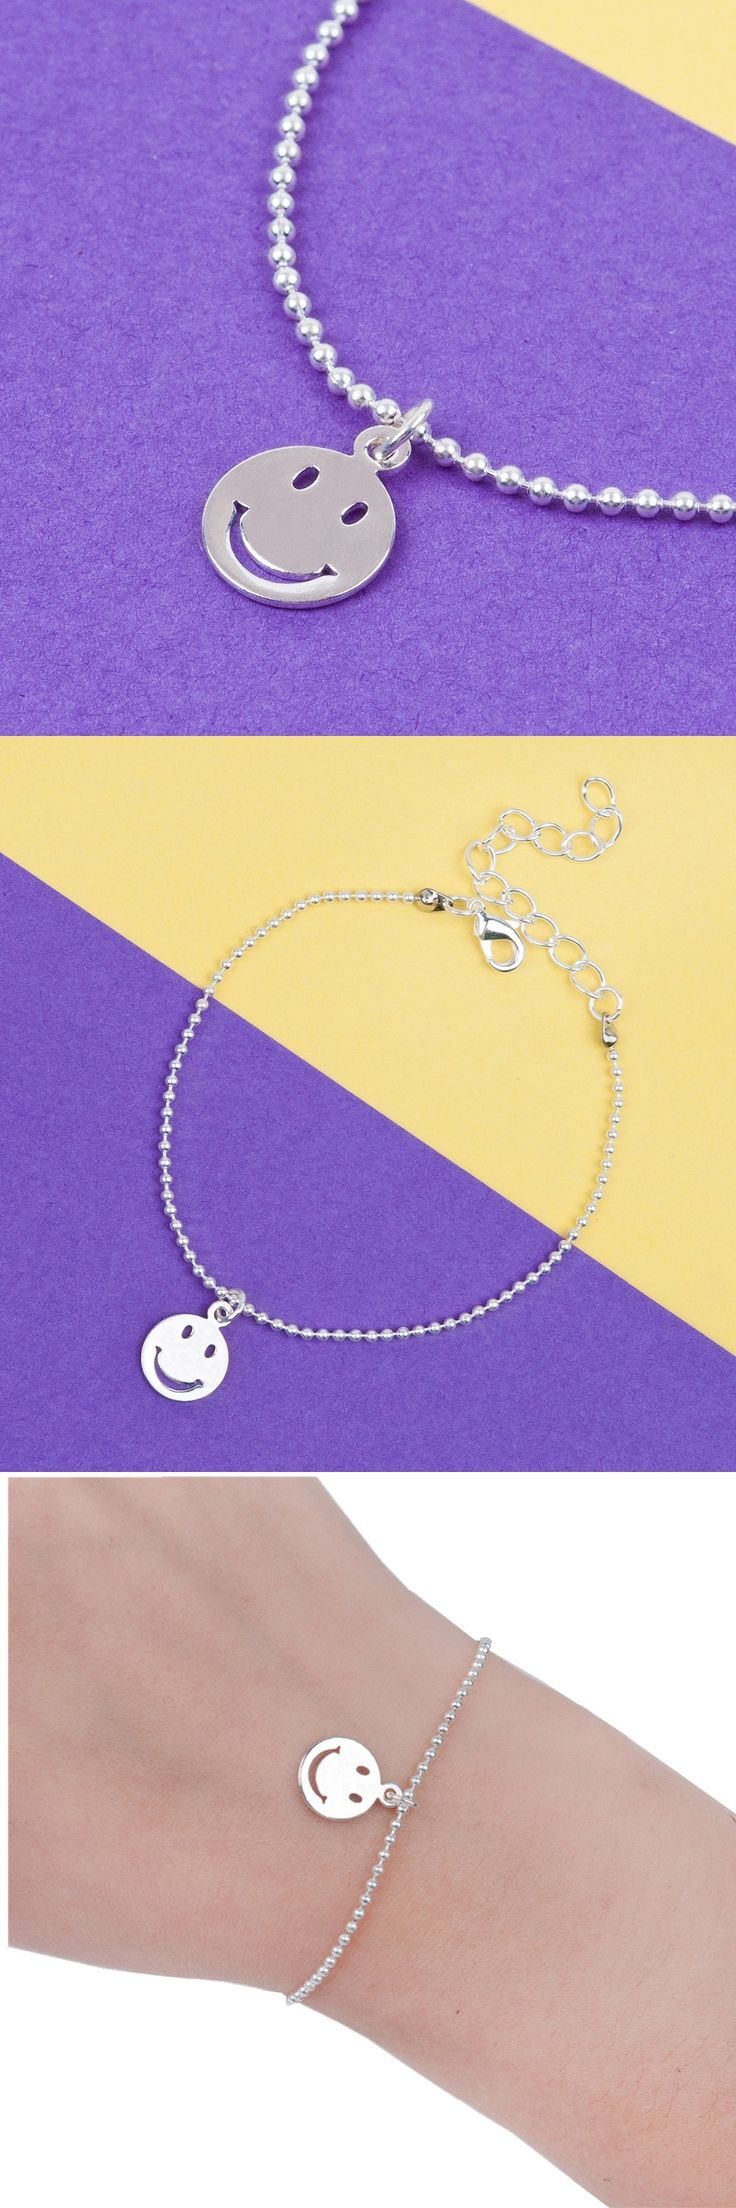 "8SEASONS Copper Bracelets Silver color Round Smiley Emoji Face Charms Ball Chain Lobster Clasp Extended Chain 16.5cm(6 4/8"")"